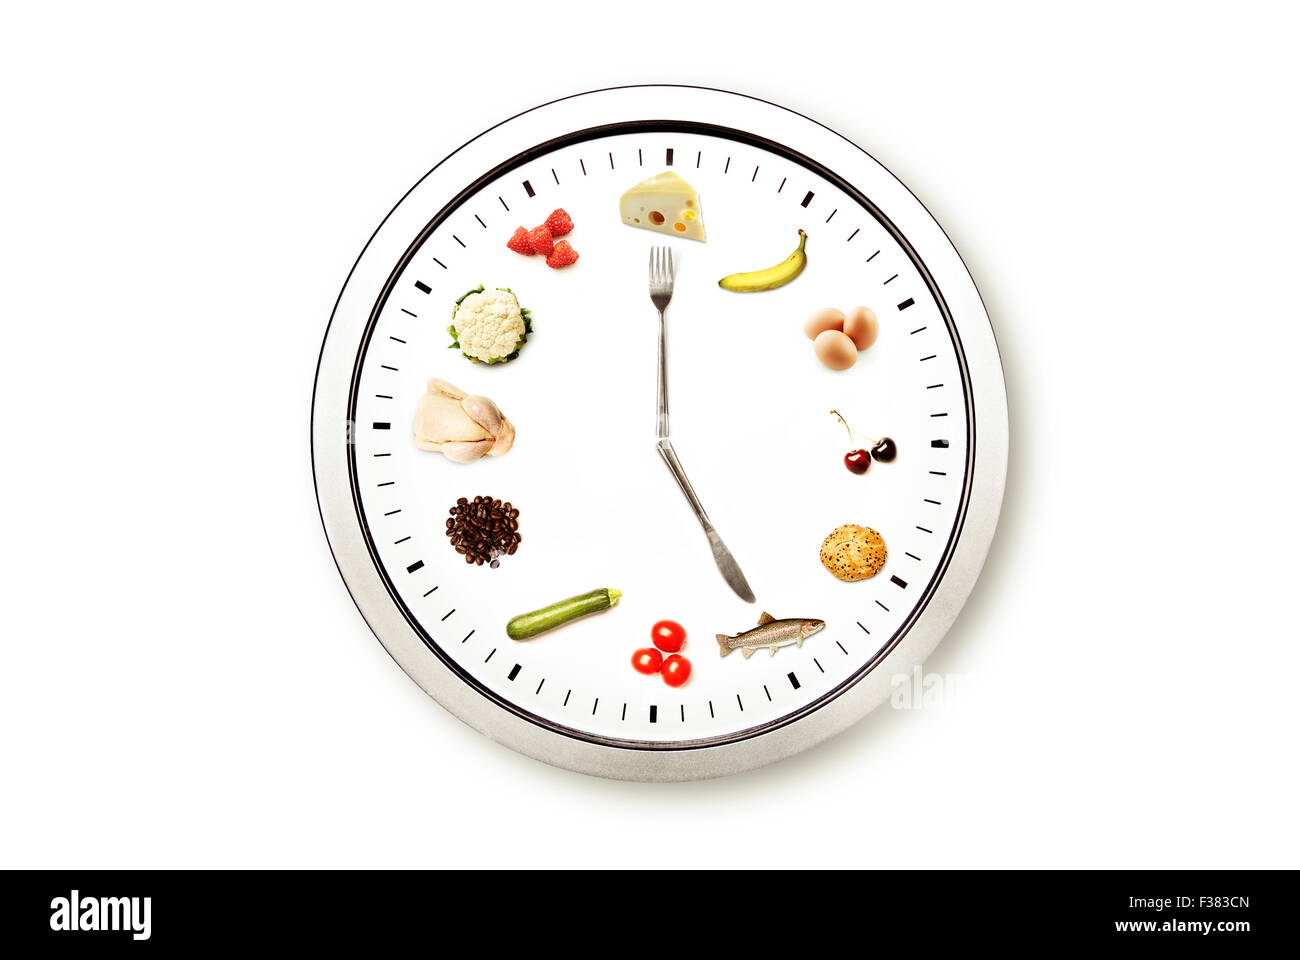 time for food, conceptual image for diet and nutrition - Stock Image